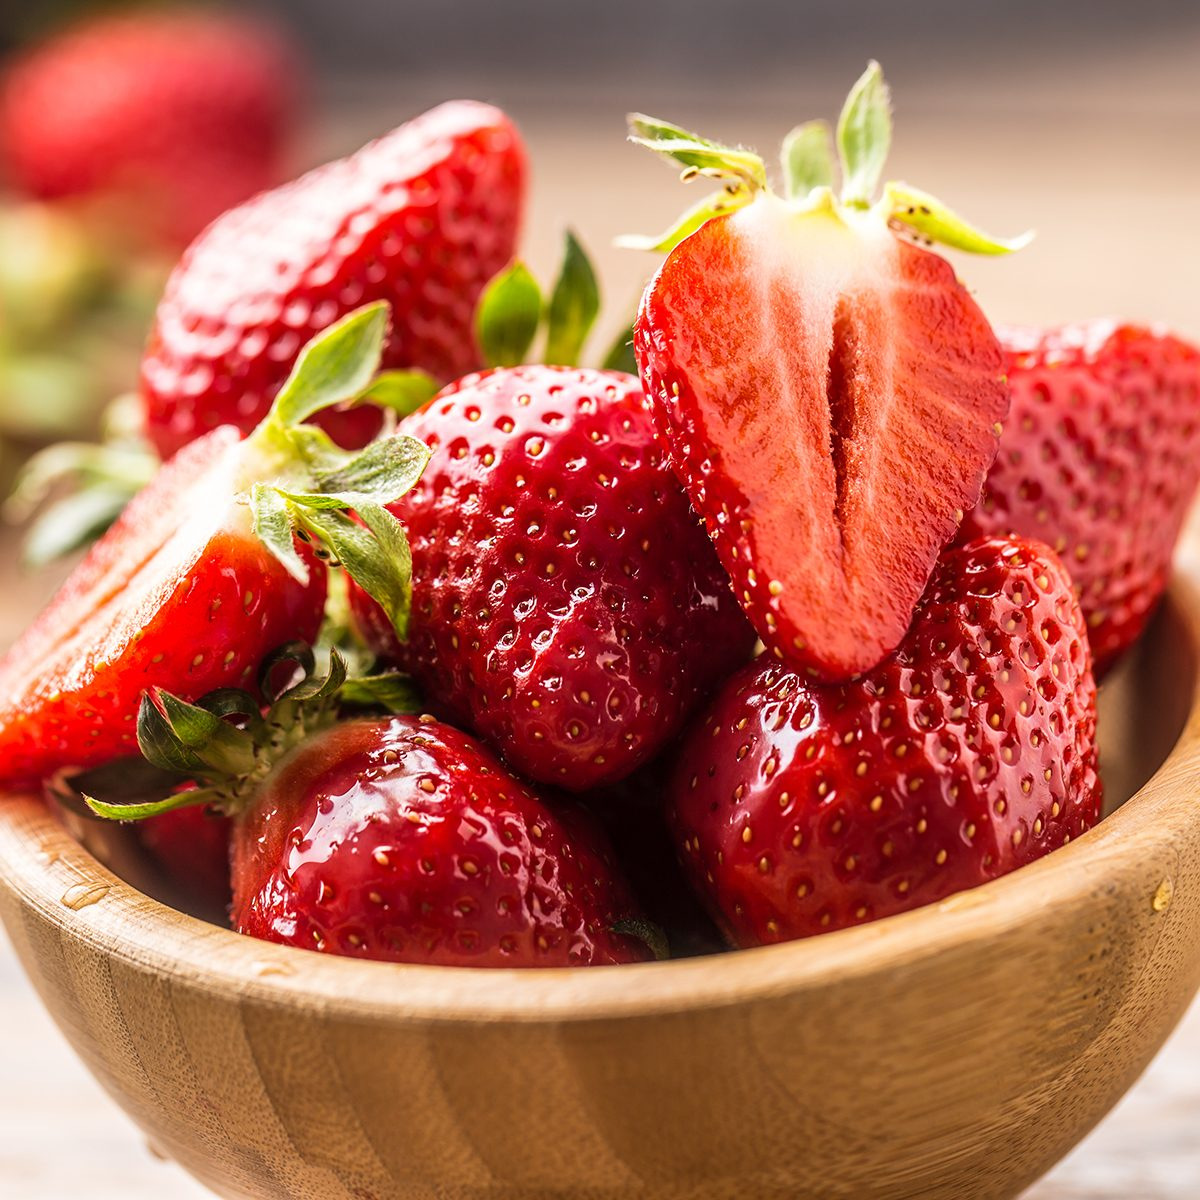 Juicy washed strawberries in wooden bowl on kitchen table.